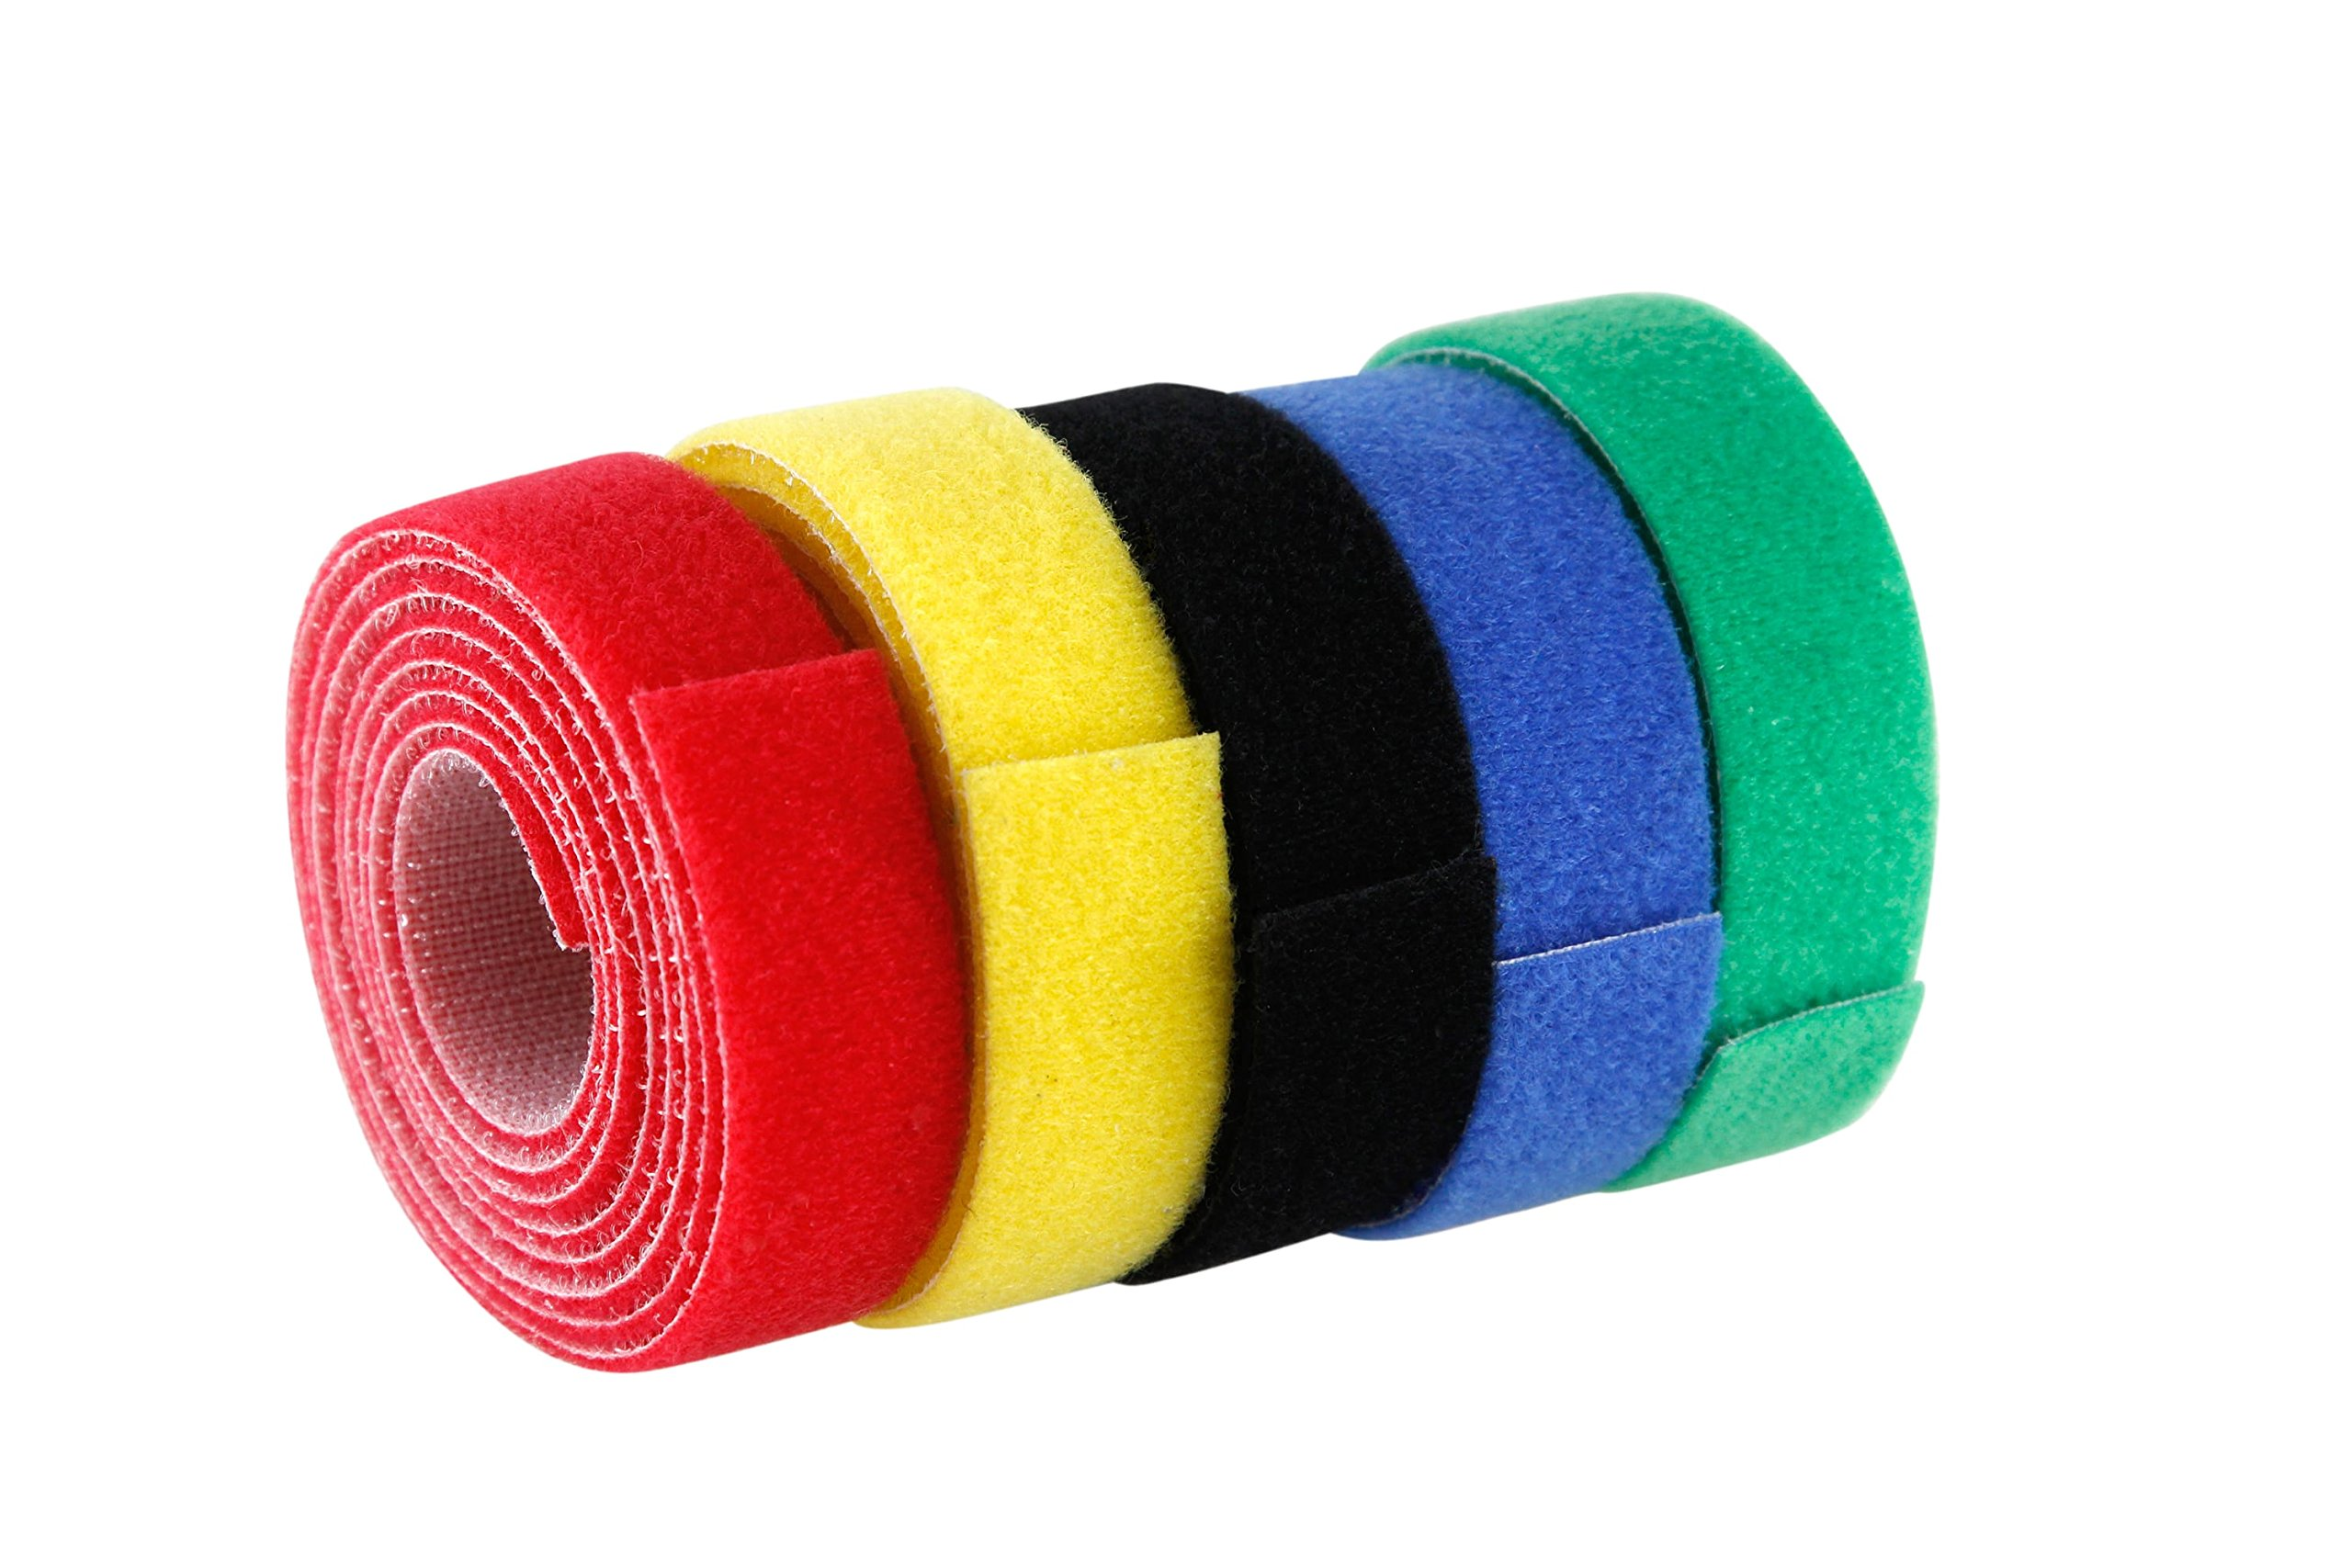 Baumgartens Nylon Cord Roll 5 Pack Assorted Colors (Pack of 5) (48005) by Baumgartens (Image #2)